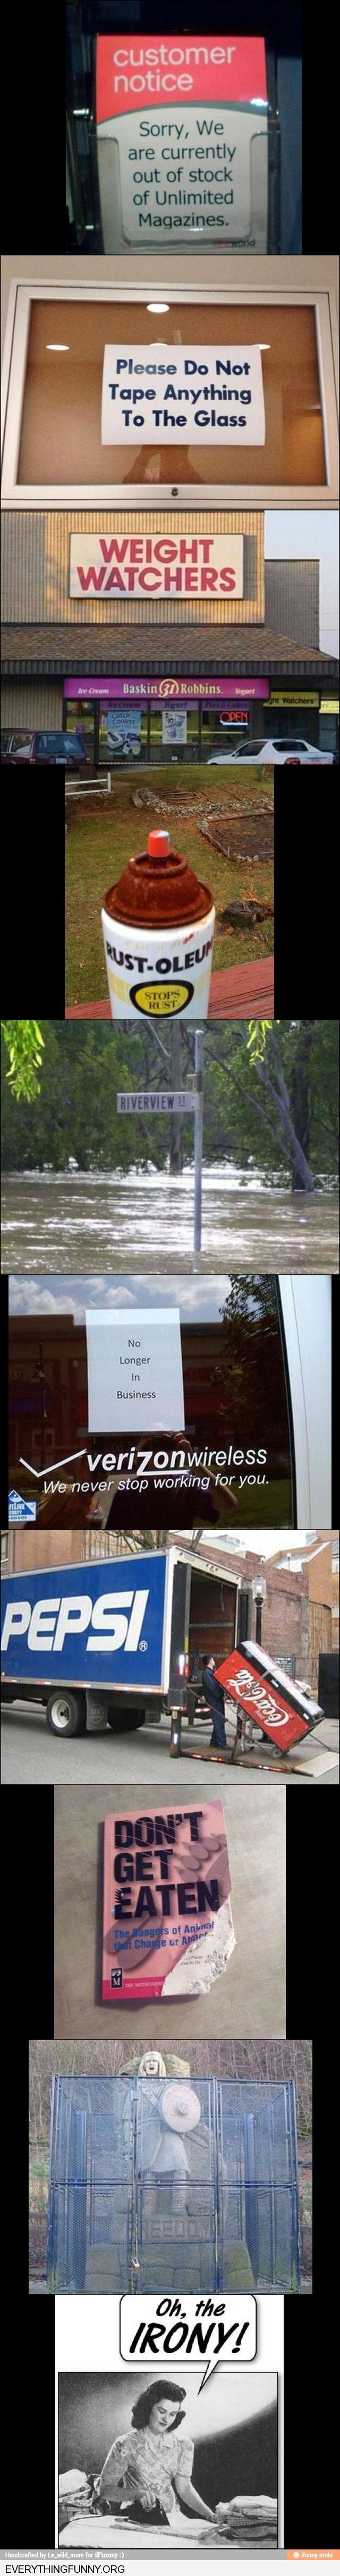 Love irony! Visit http://everythingfunny.org for thousands of funny captions and pictures.